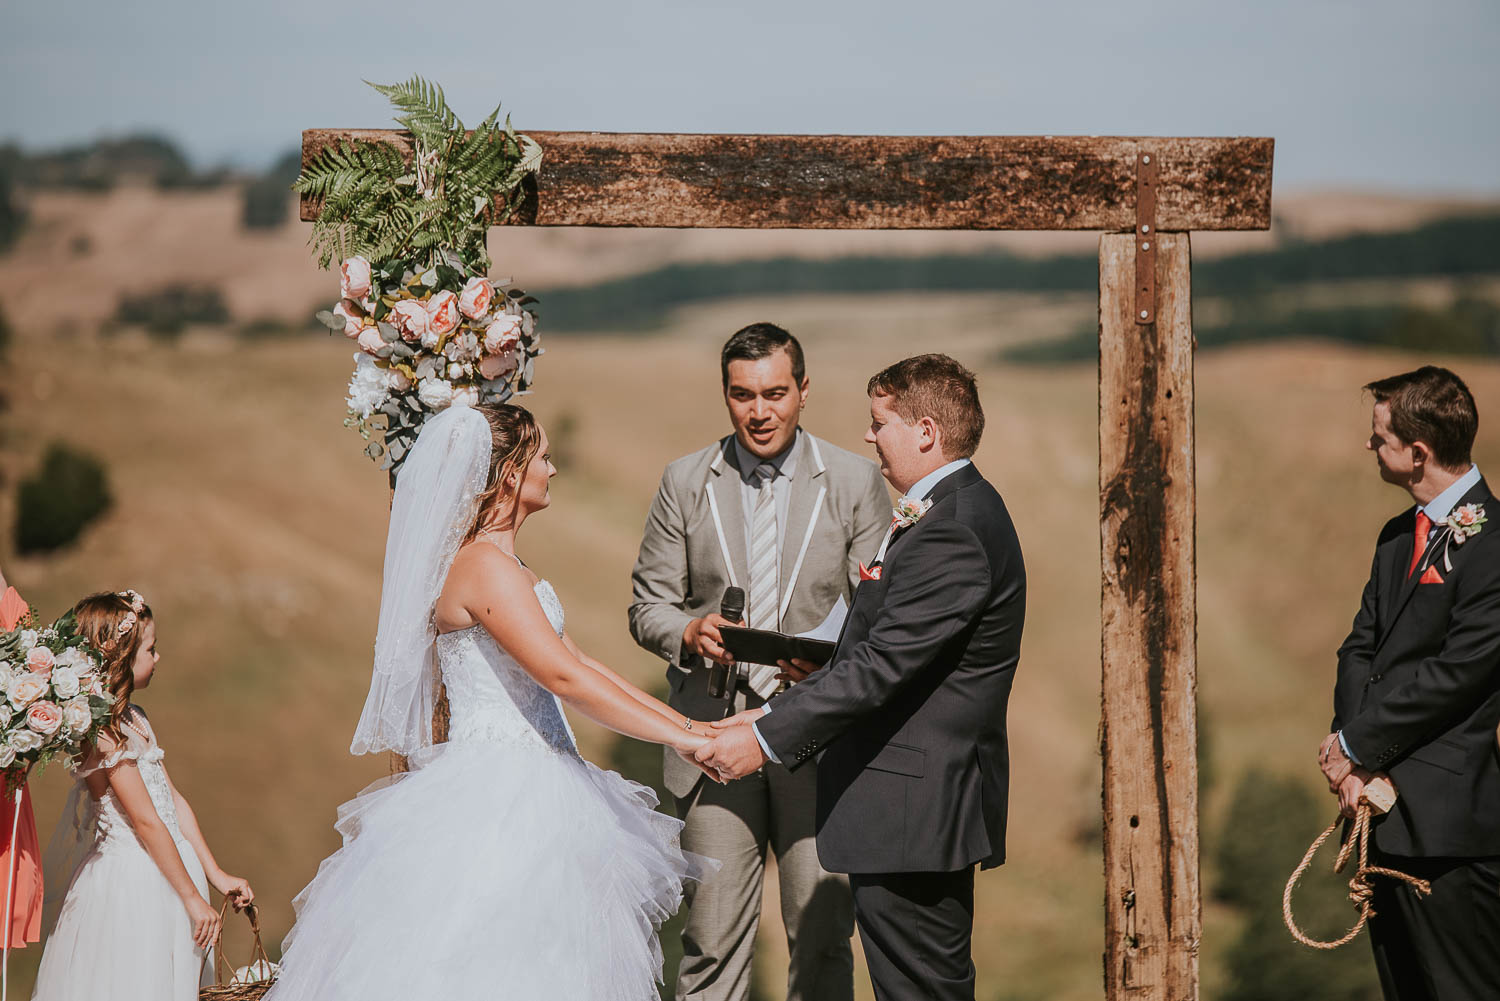 James-Melinda-Rustic-Farm-Auckland-Wedding-48.jpg